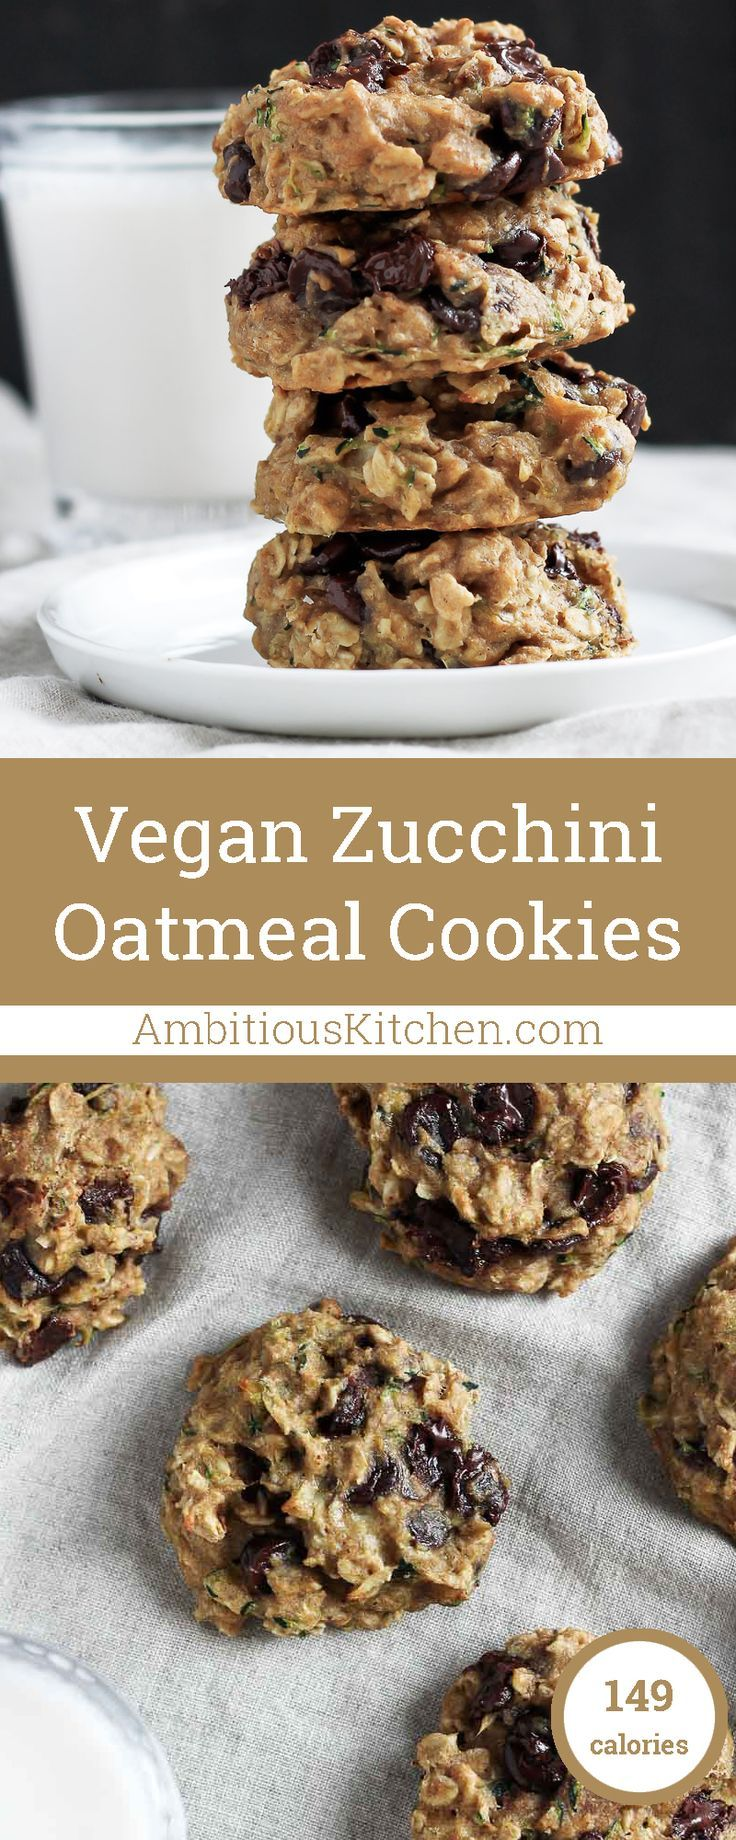 Vegan Healthy Banana Zucchini Oatmeal Cookies made with whole grains + naturally sweetened. These are AMAZING and healthy enough to eat for breakfast!